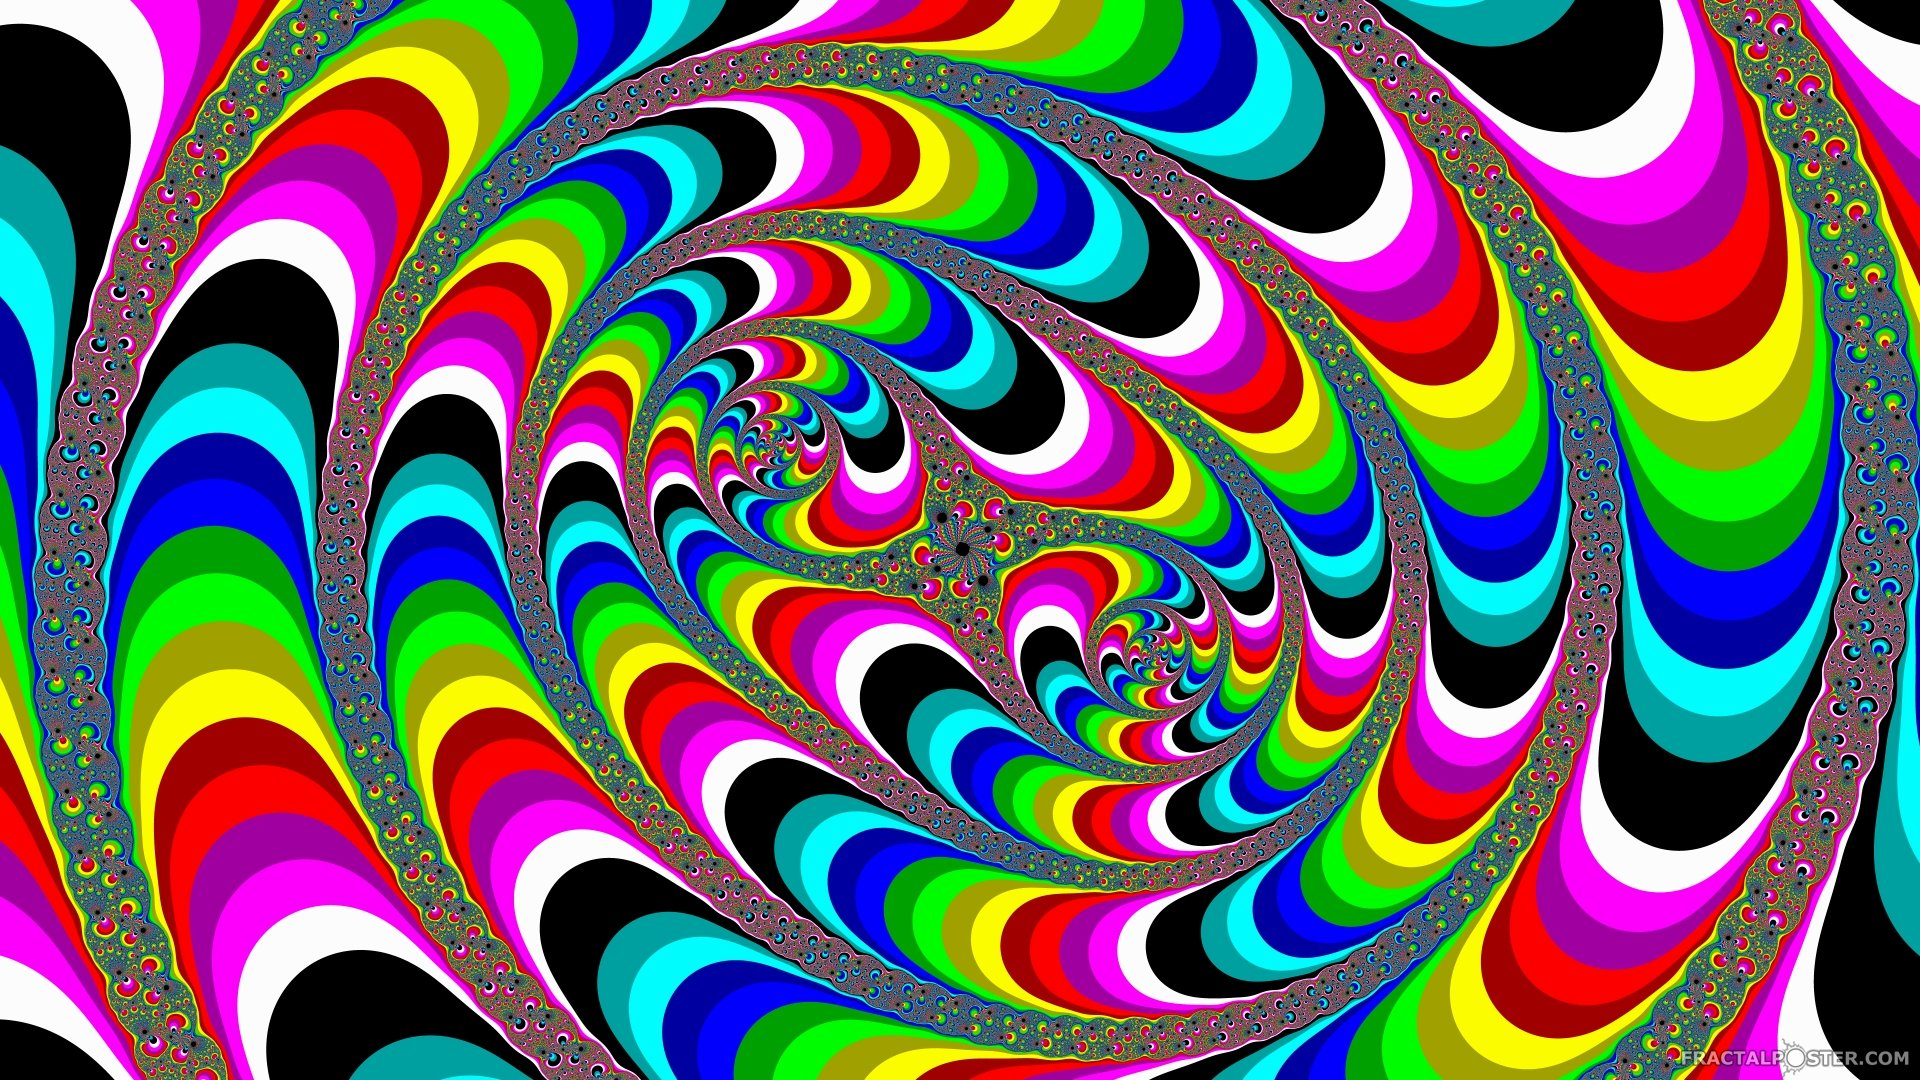 Trippy Psychedelic Backgrounds 18 Wallpapers Adorable Wallpapers